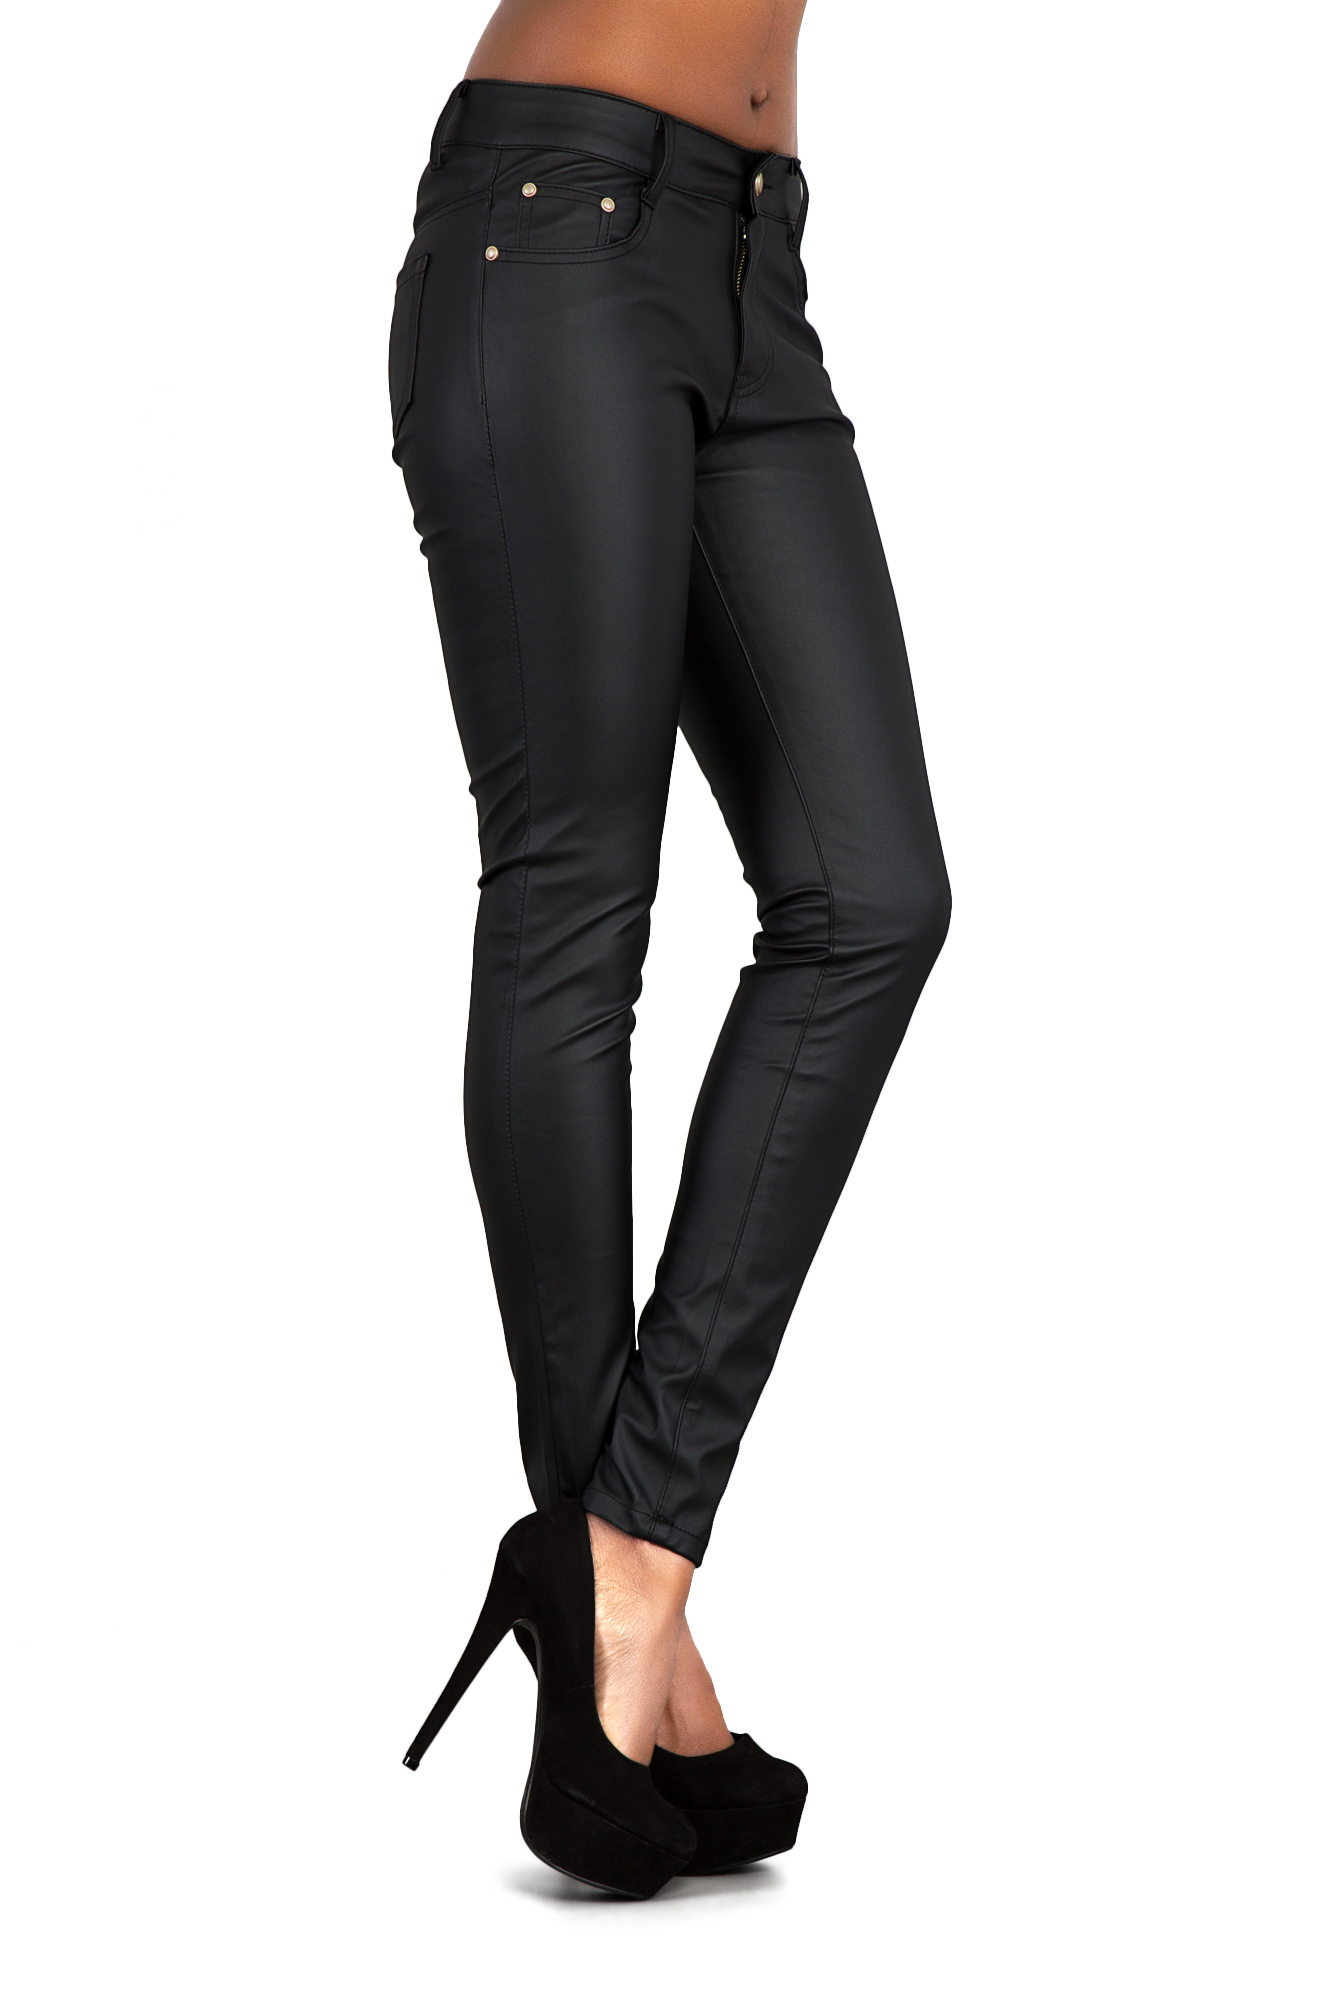 Womens Ladies Black Wet Look Leather Jeans Skinny Trouser ...